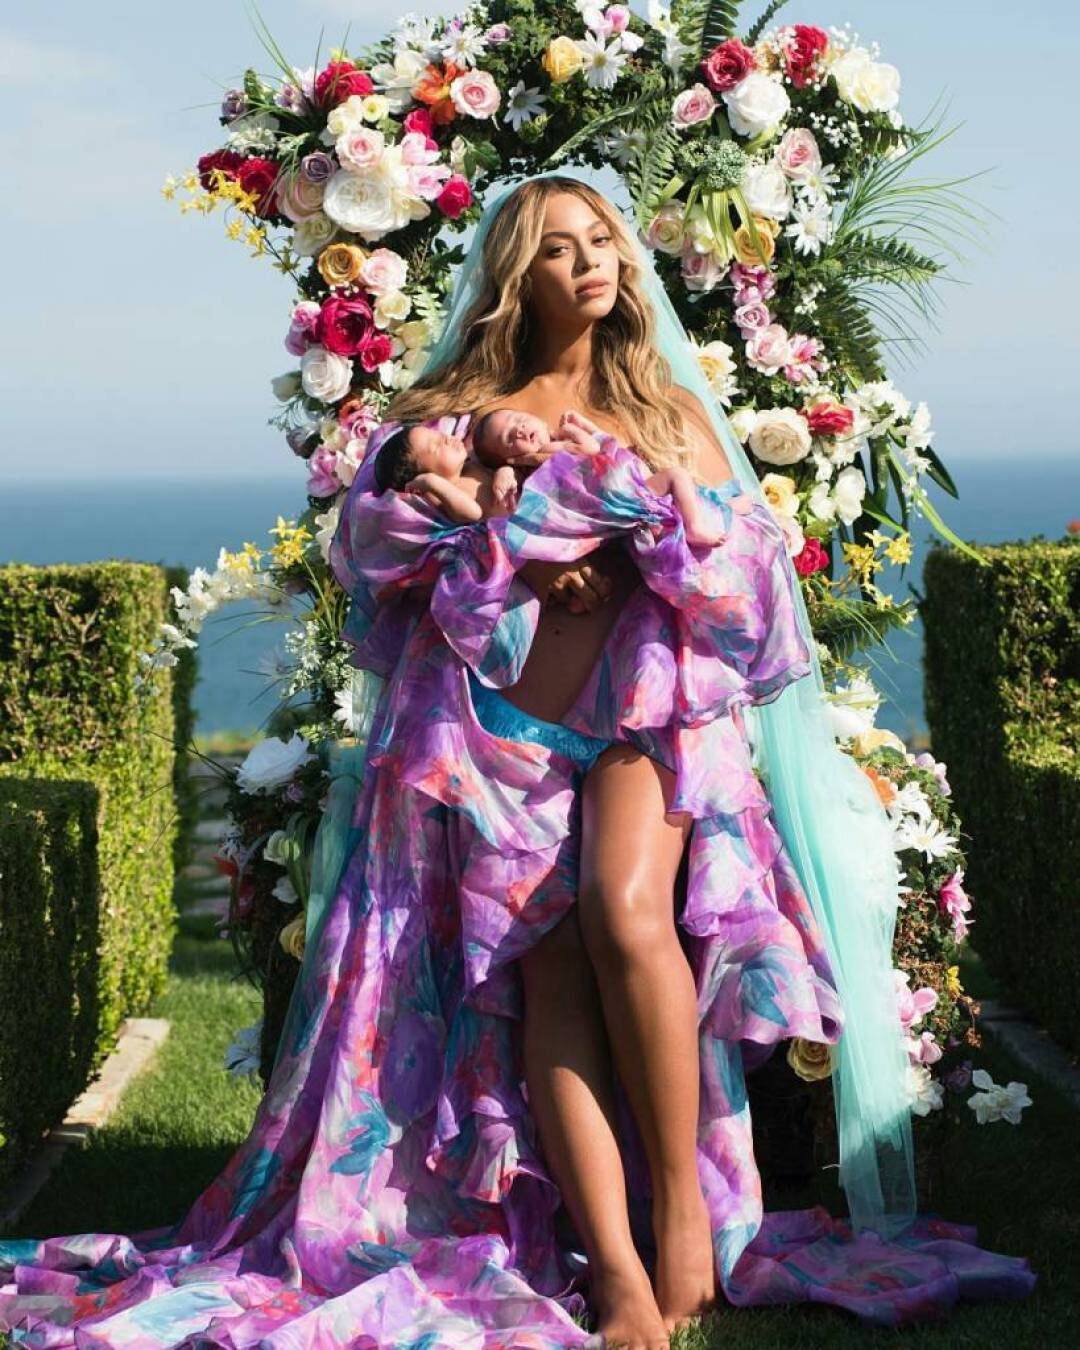 Beyoncé celebrates her twins Rumi and Sir's first month